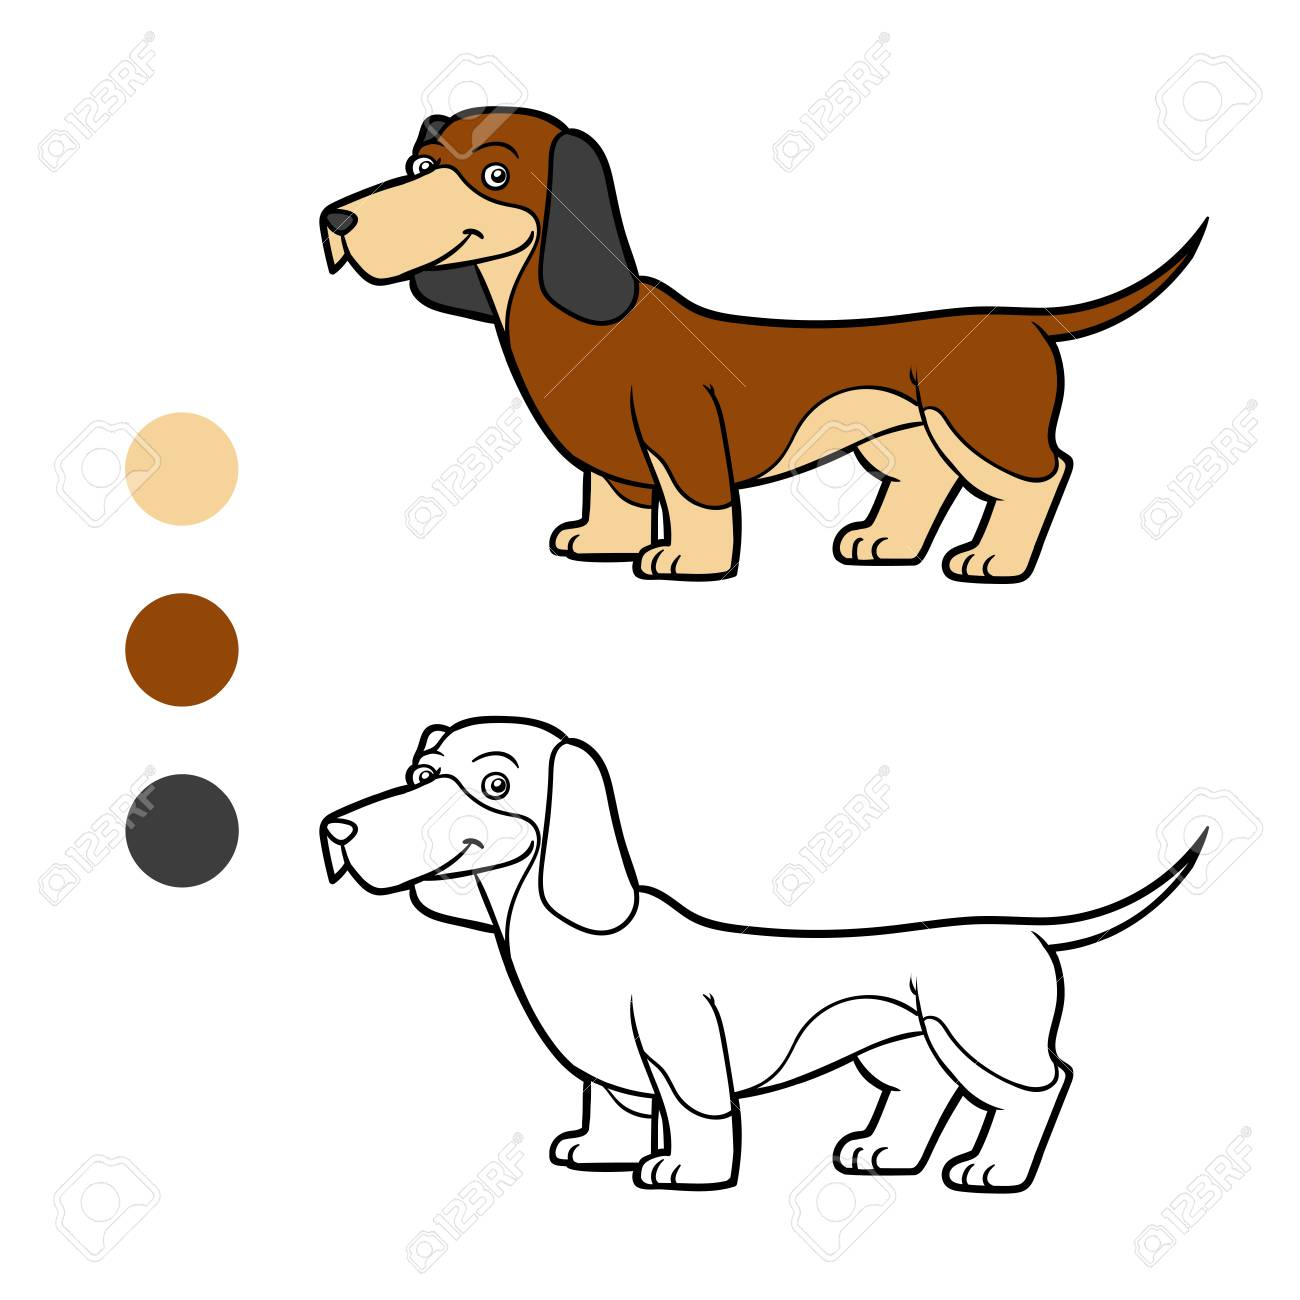 Coloring Book For Children Dog Breeds Dachshund Stock Vector